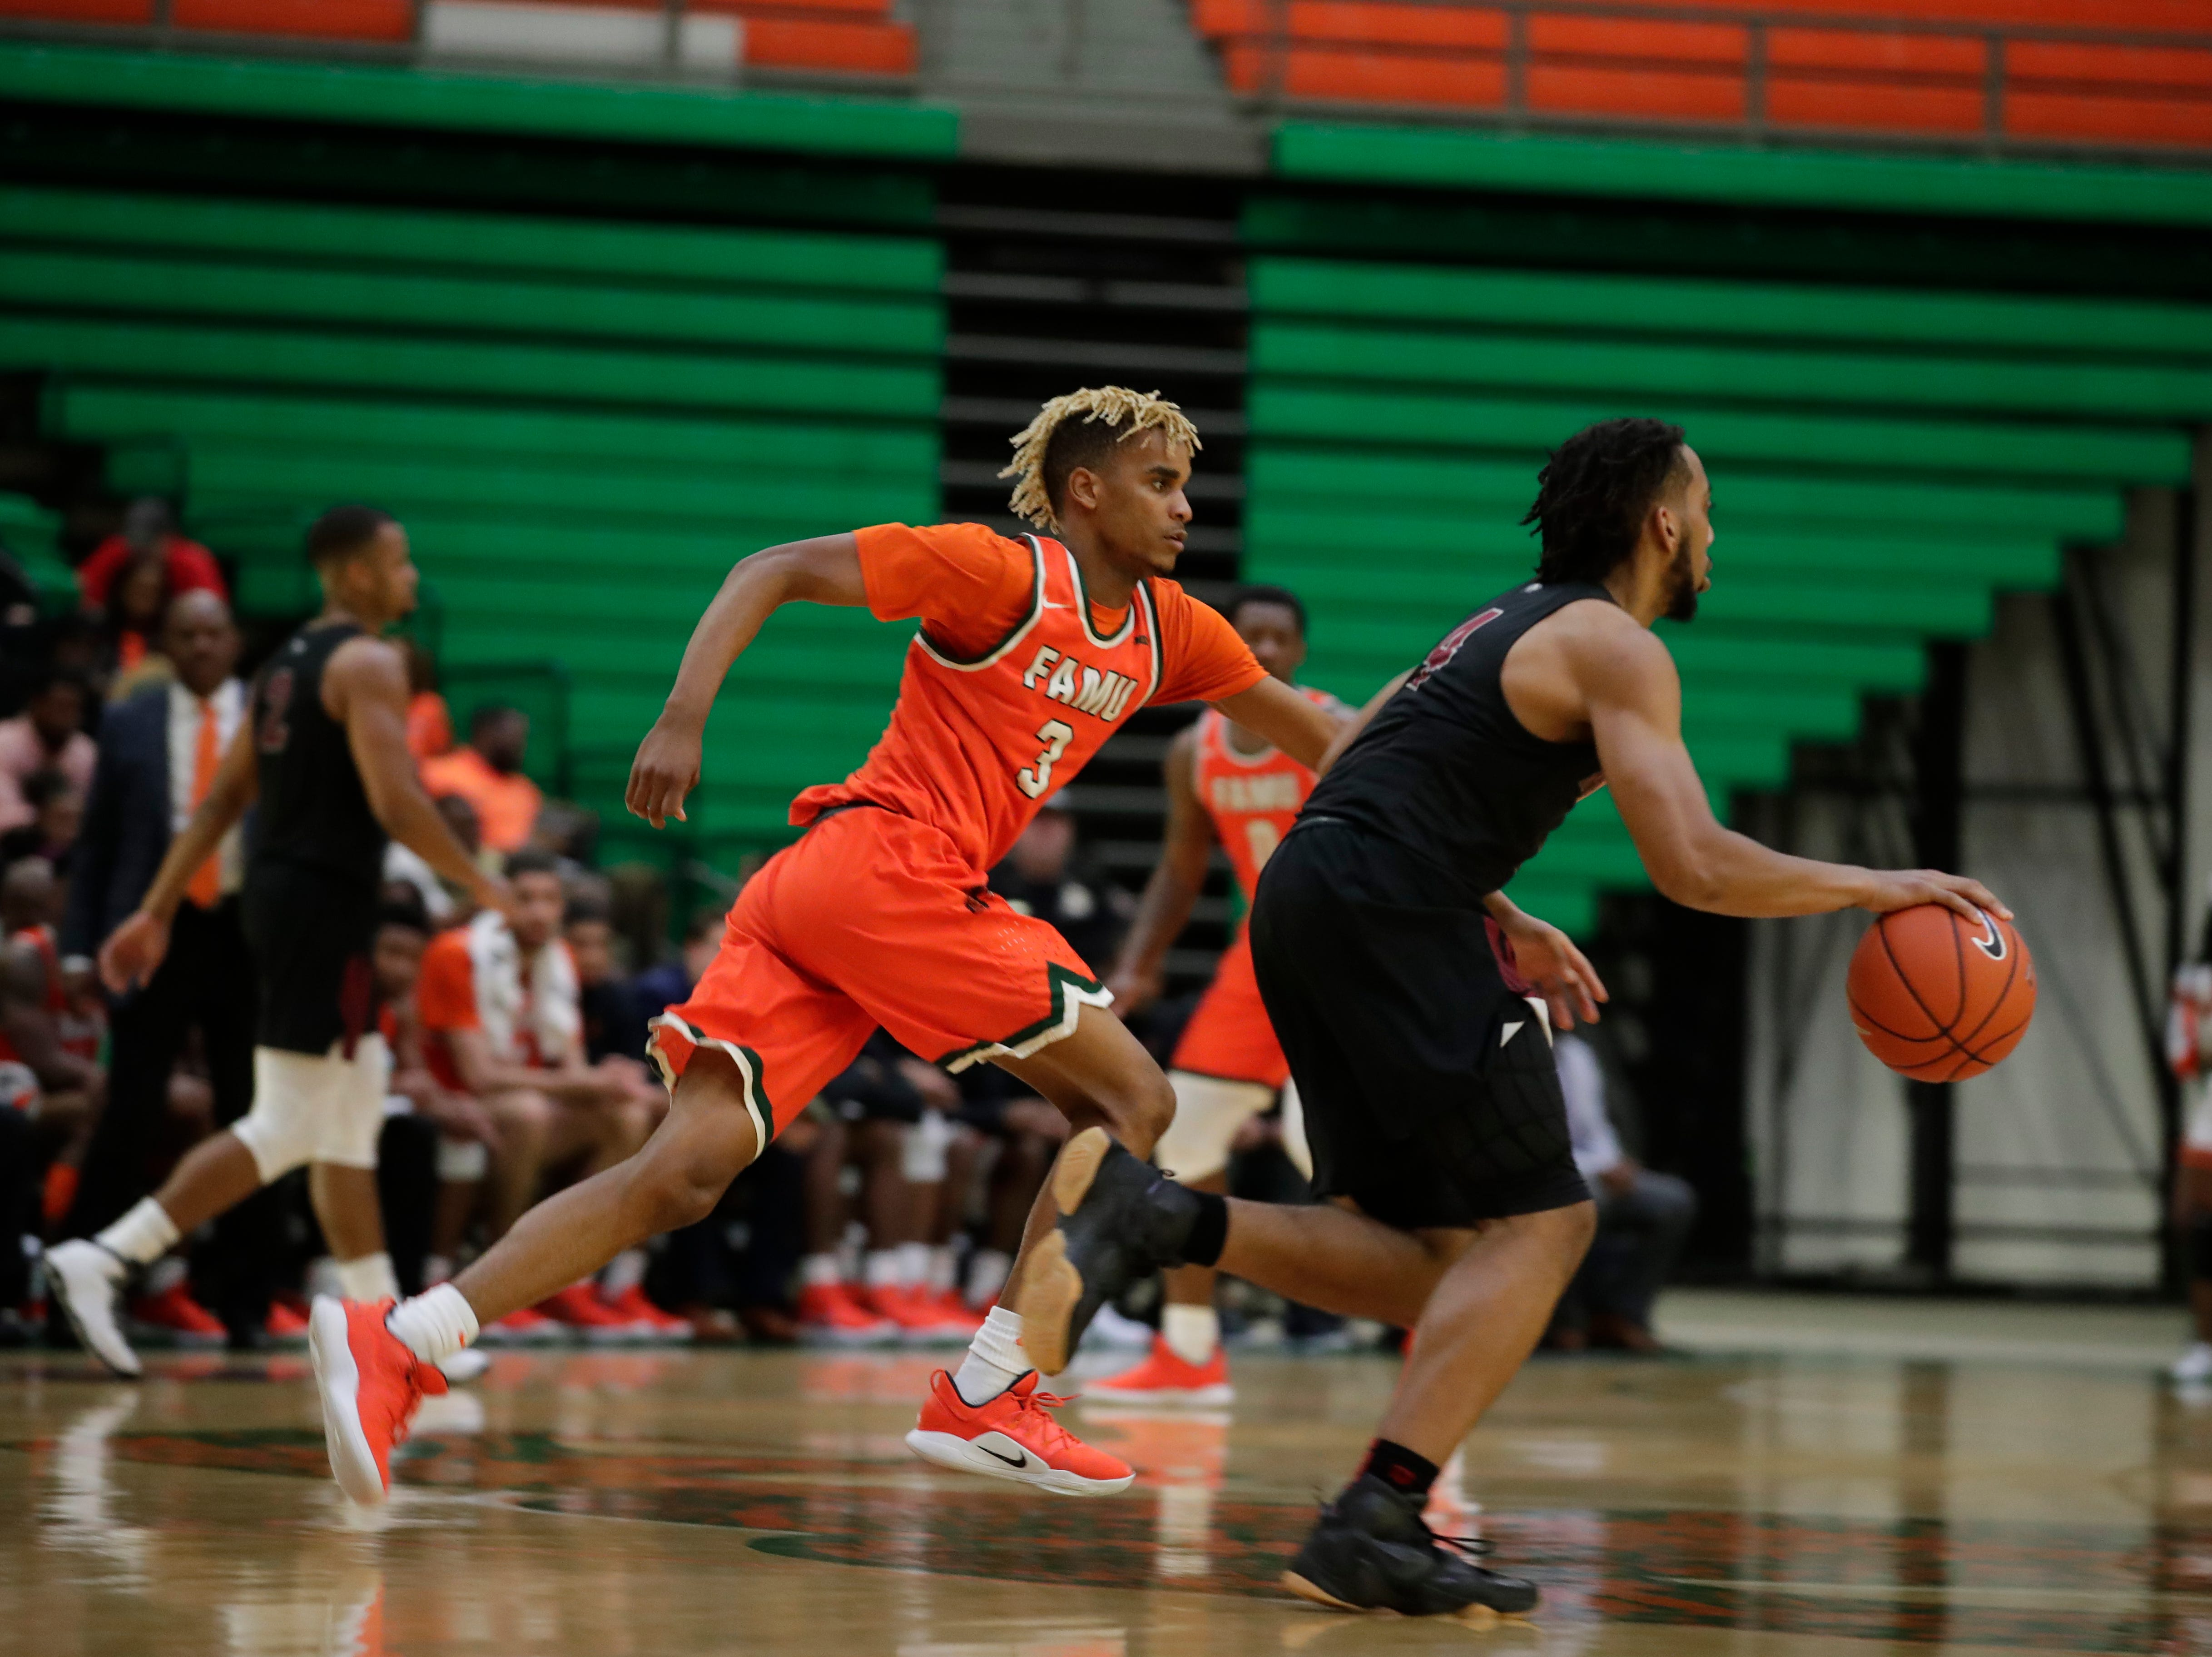 FAMU guard MJ Randolph (3) runs to catch up to his man at the Alfred Lawson Jr. Multipurpose Center Monday, Feb. 4, 2019. The Rattlers defeated N.C. Central.